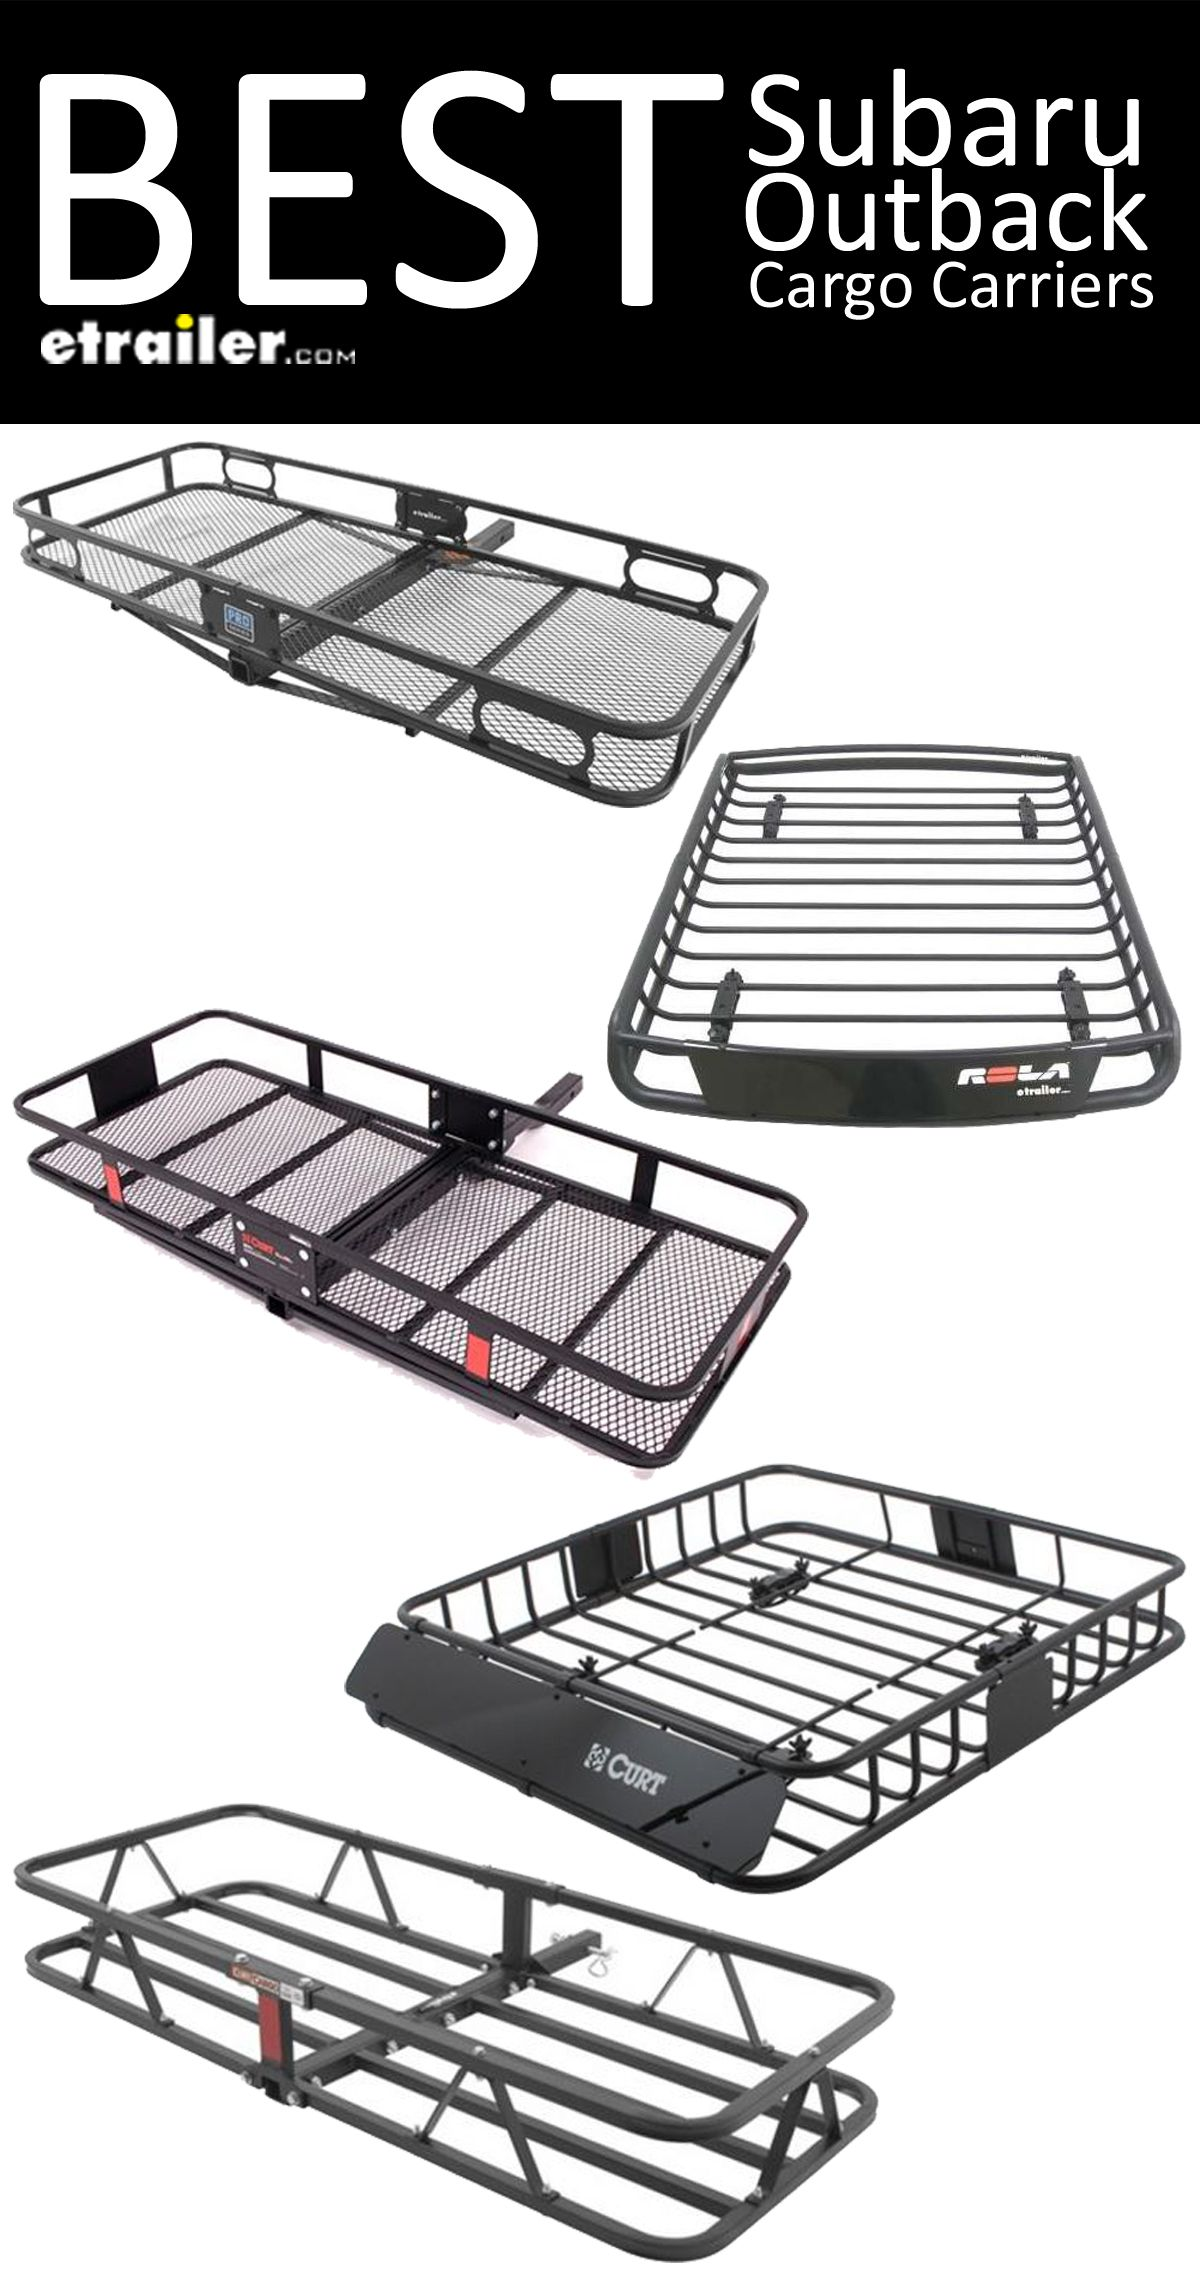 Here Are The Best Cargo Carriers For Your Subaru Outback Find The Right Roof Mounted Cargo Basket Or Hitch Mounte Subaru Outback Subaru Outback Offroad Subaru